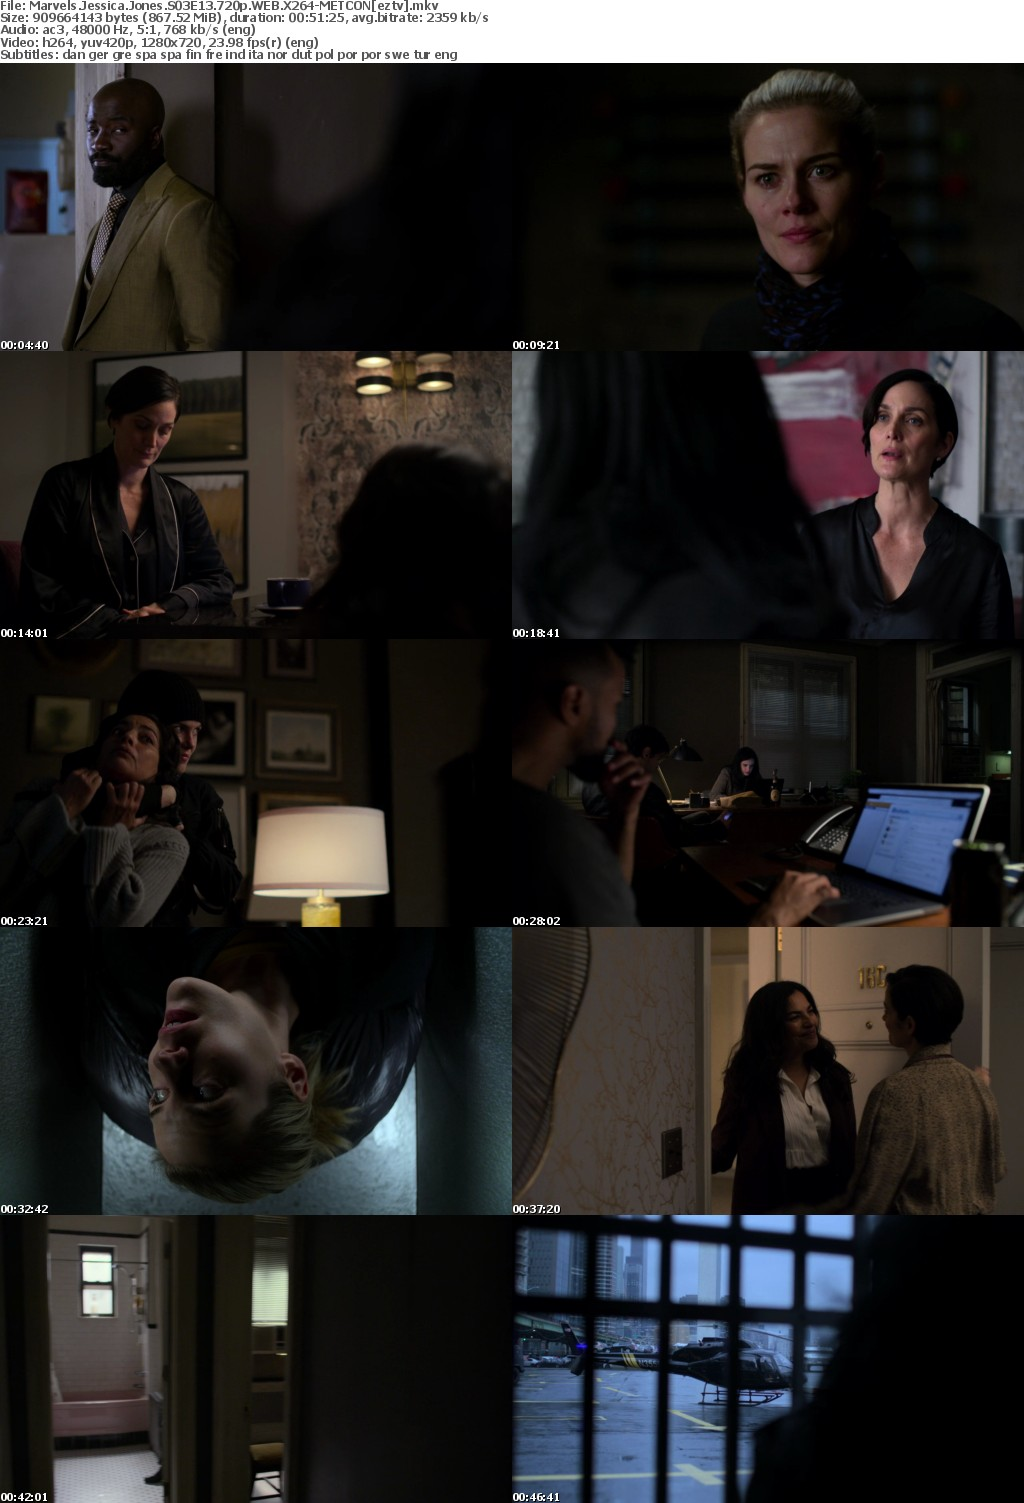 Marvels Jessica Jones S03E13 720p WEB X264-METCON